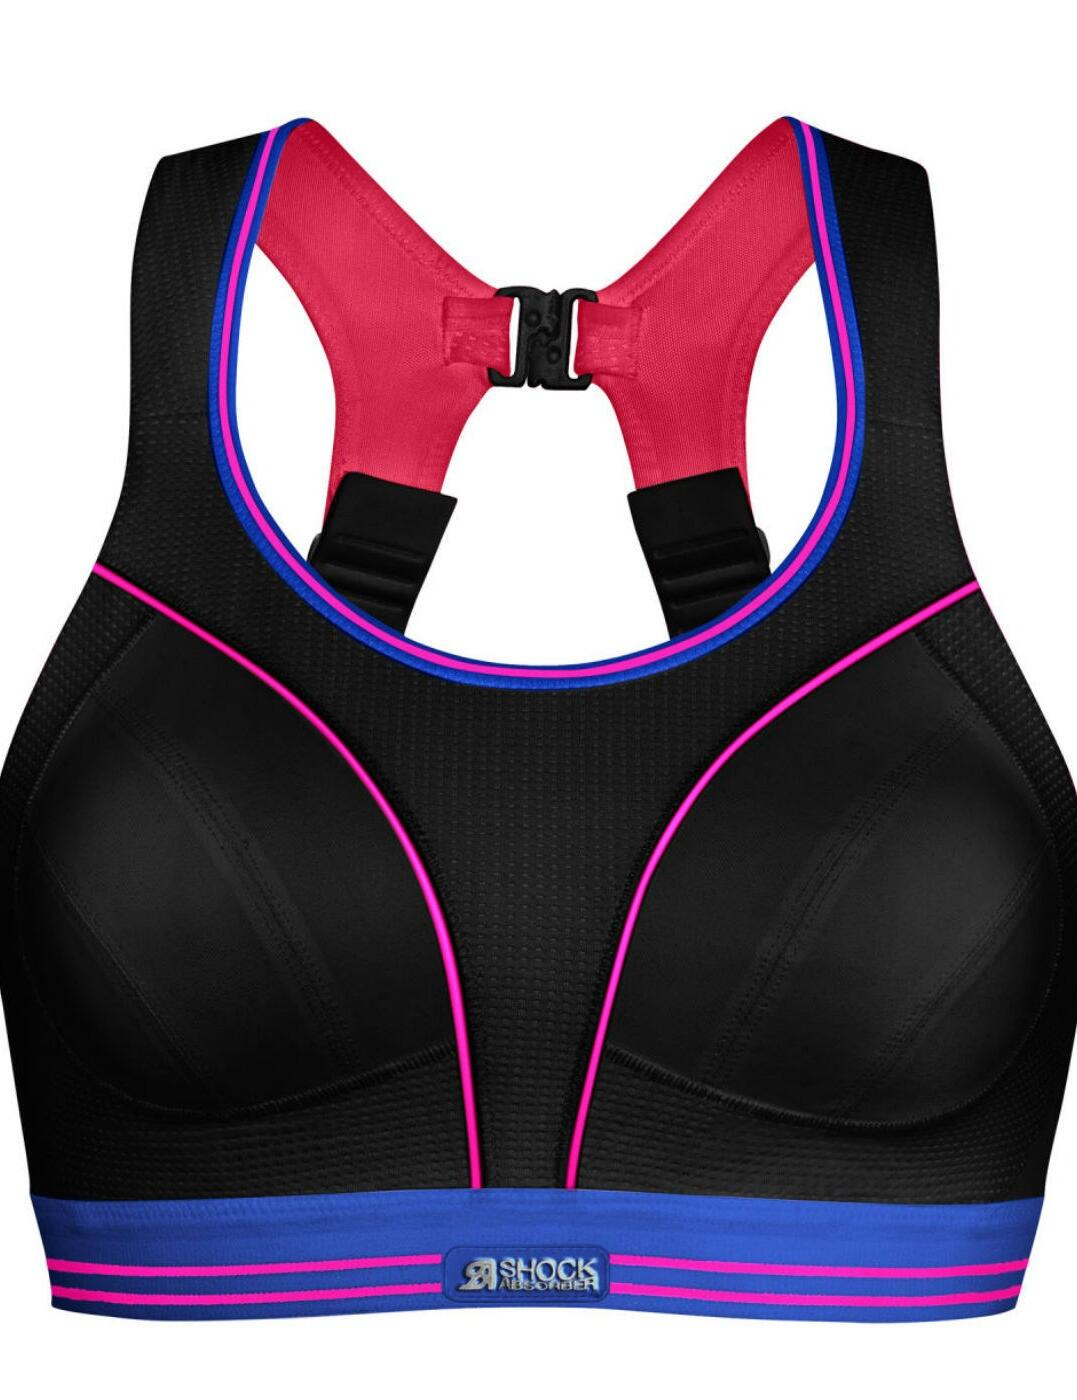 Shock-Absorber-Sports-Bra-S5044-Non-Wired-High-Impact-Run-Sports-Bra thumbnail 10